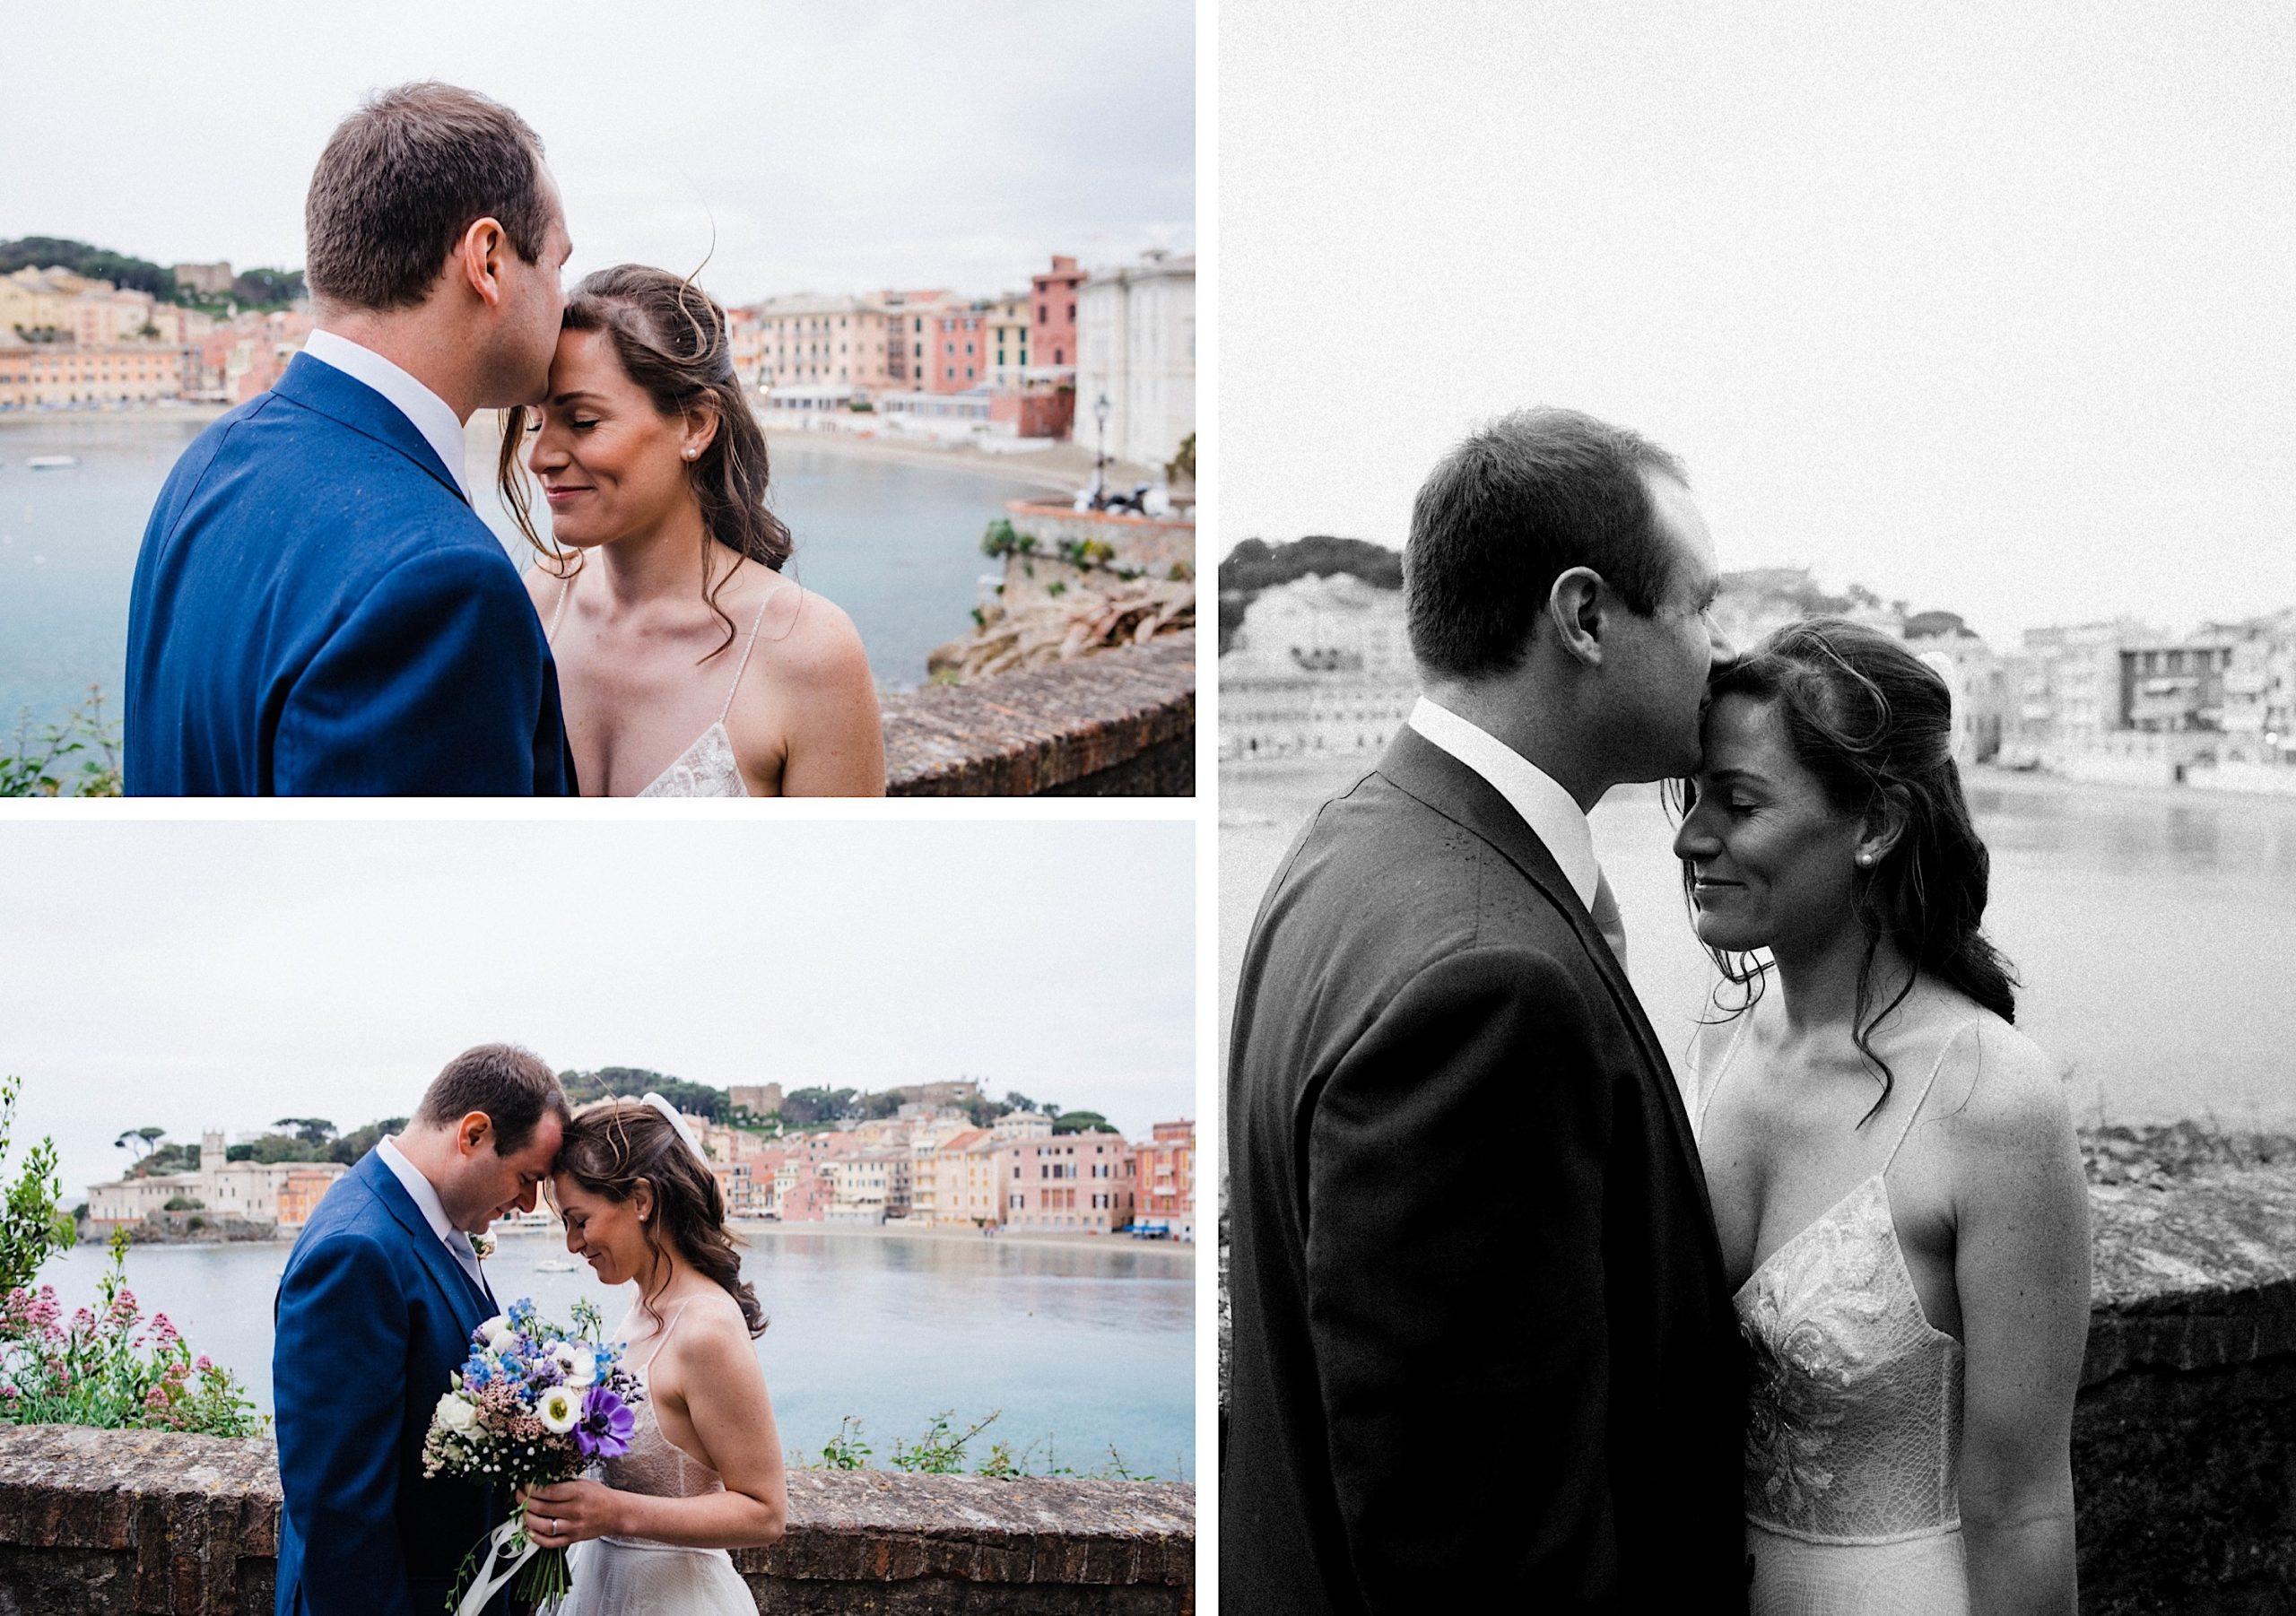 Three romantic destination wedding portraits of a newly married couple standing at a lookout over the Bay of Silence.